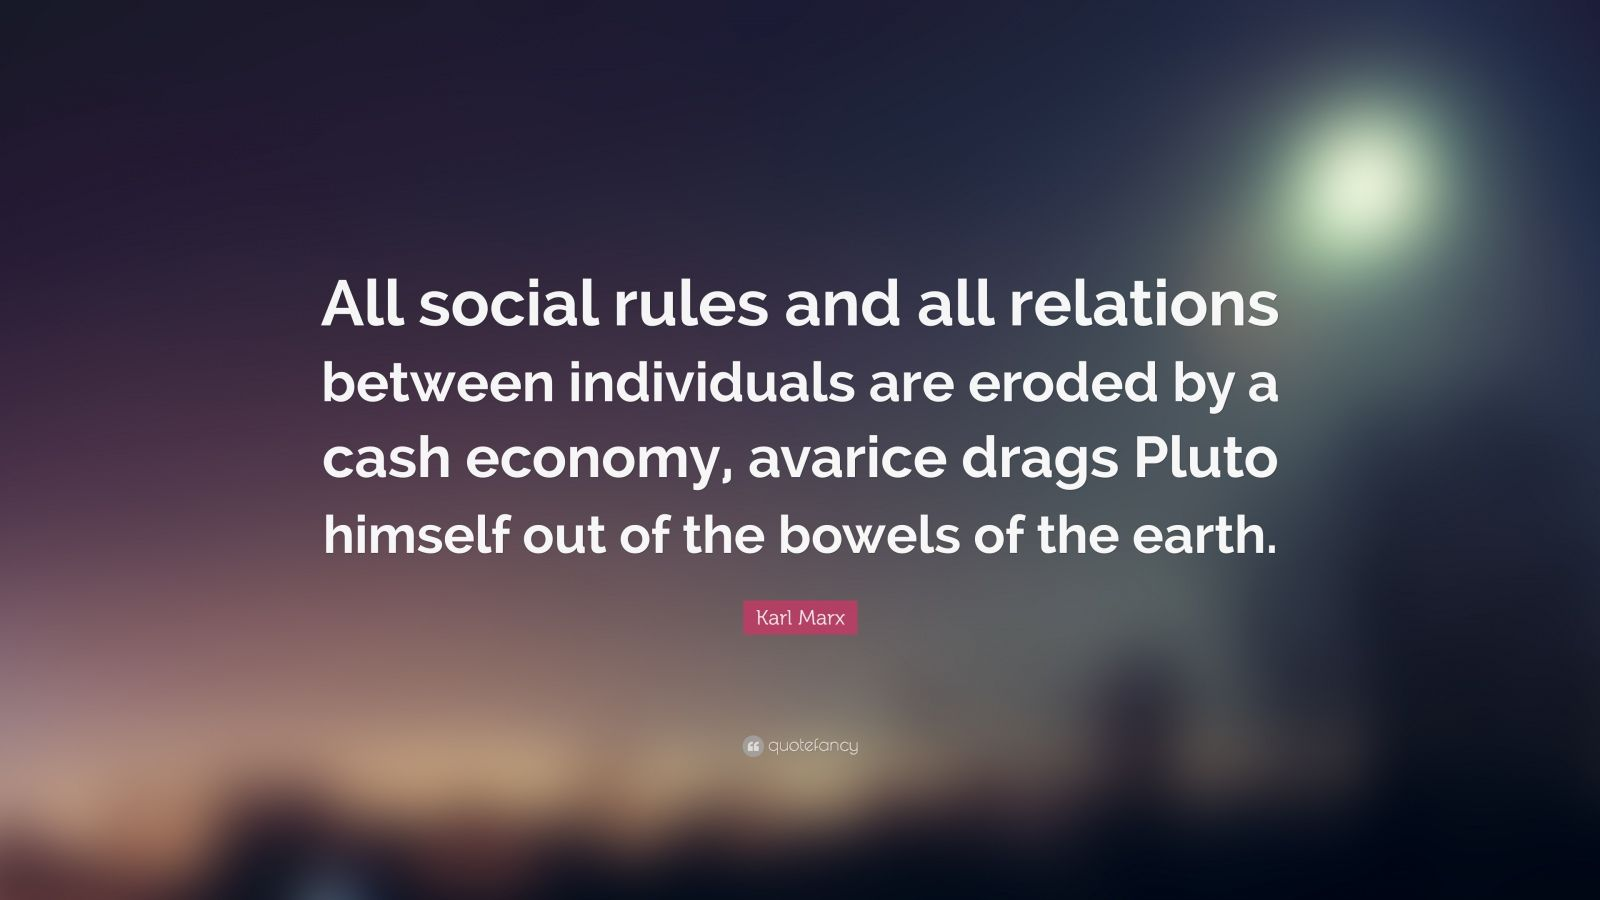 karl marx quotes quotefancy karl marx quote all social rules and all relations between individuals are eroded by